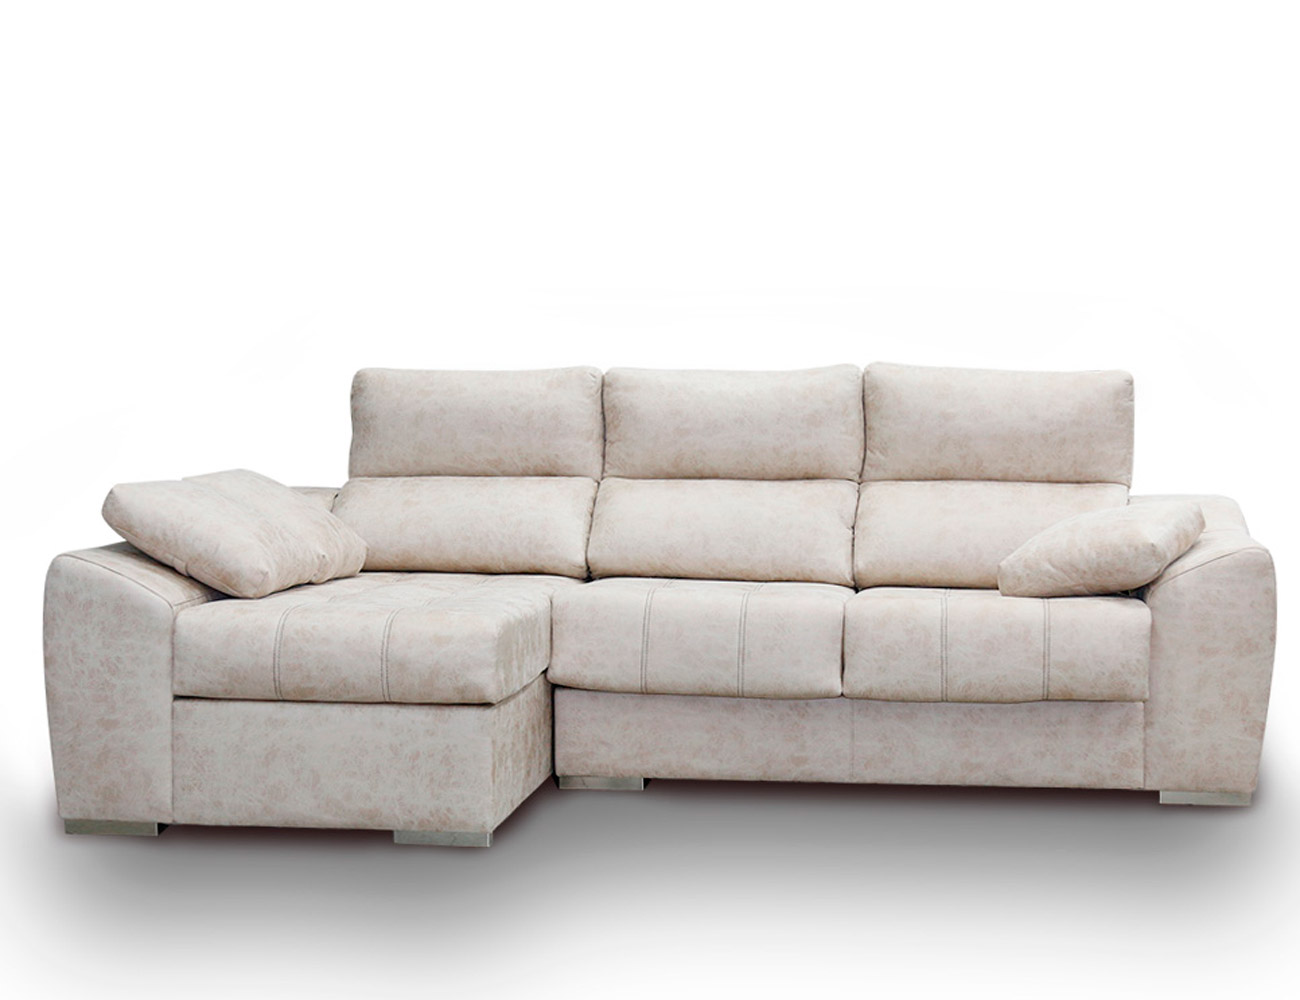 Sofa chaiselongue anti manchas beig blanco23